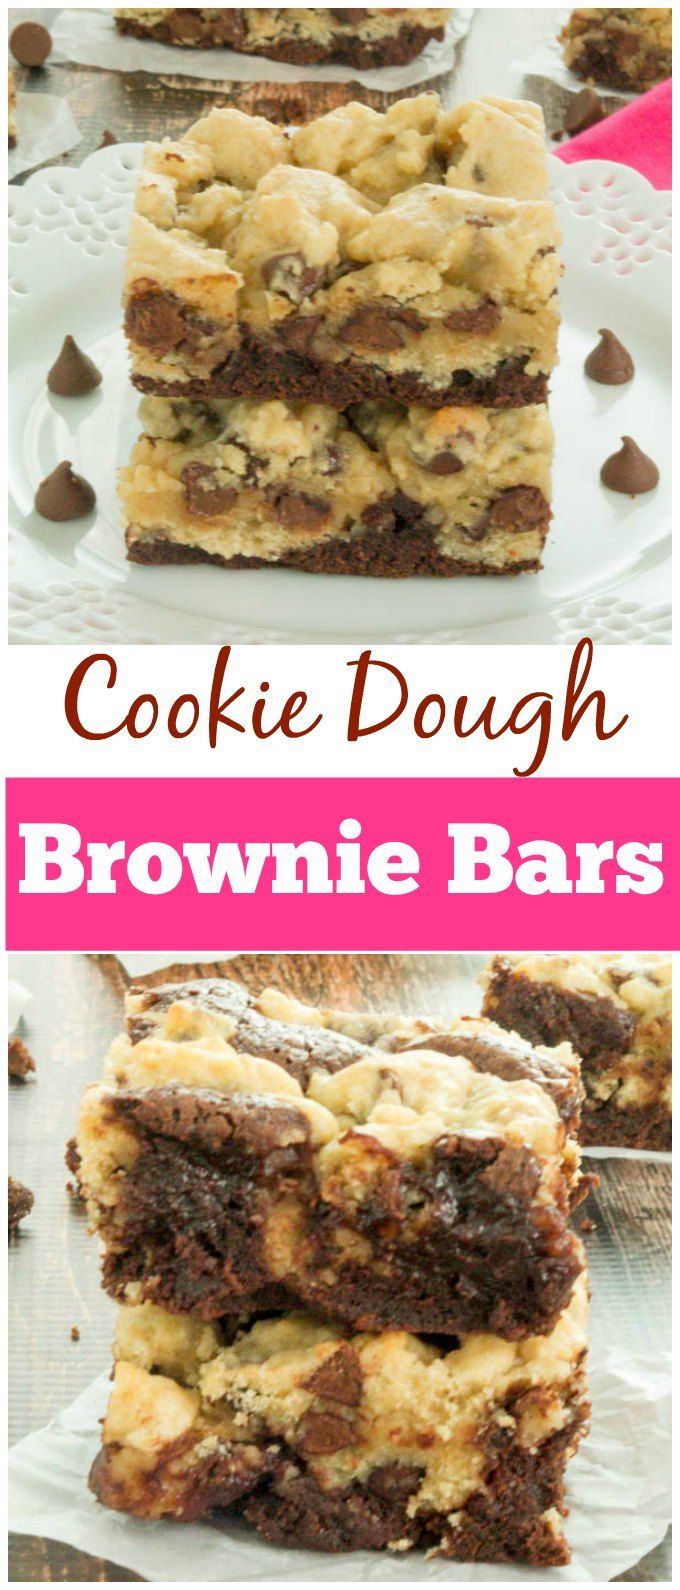 We made these and loved them so much that I went back and found it again so that I could pin it. -Heather Mouthwatering Cookie Dough Brownie Bars